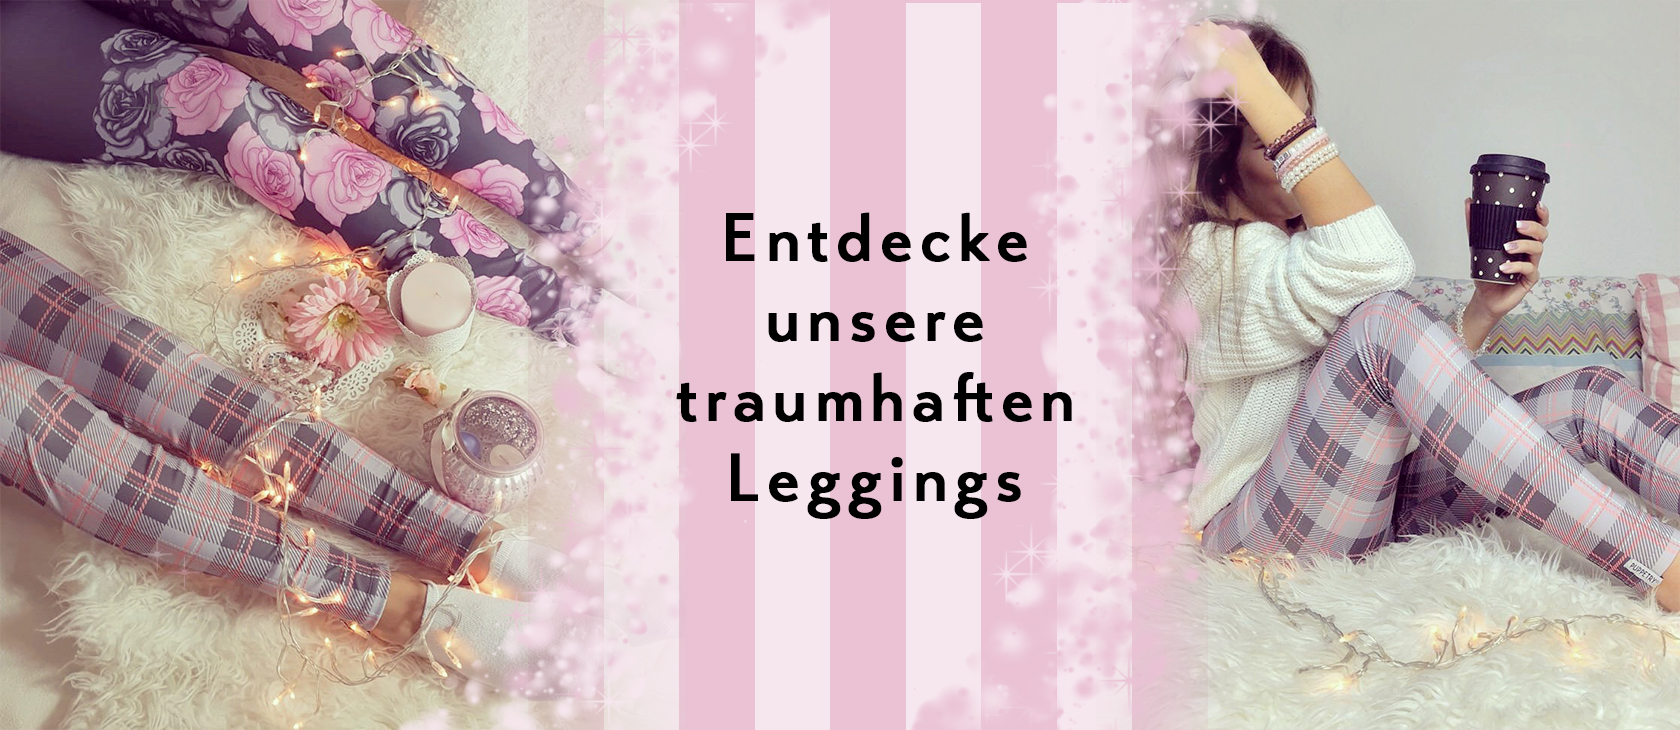 Puppetry Tights Leggings Online Shop Store